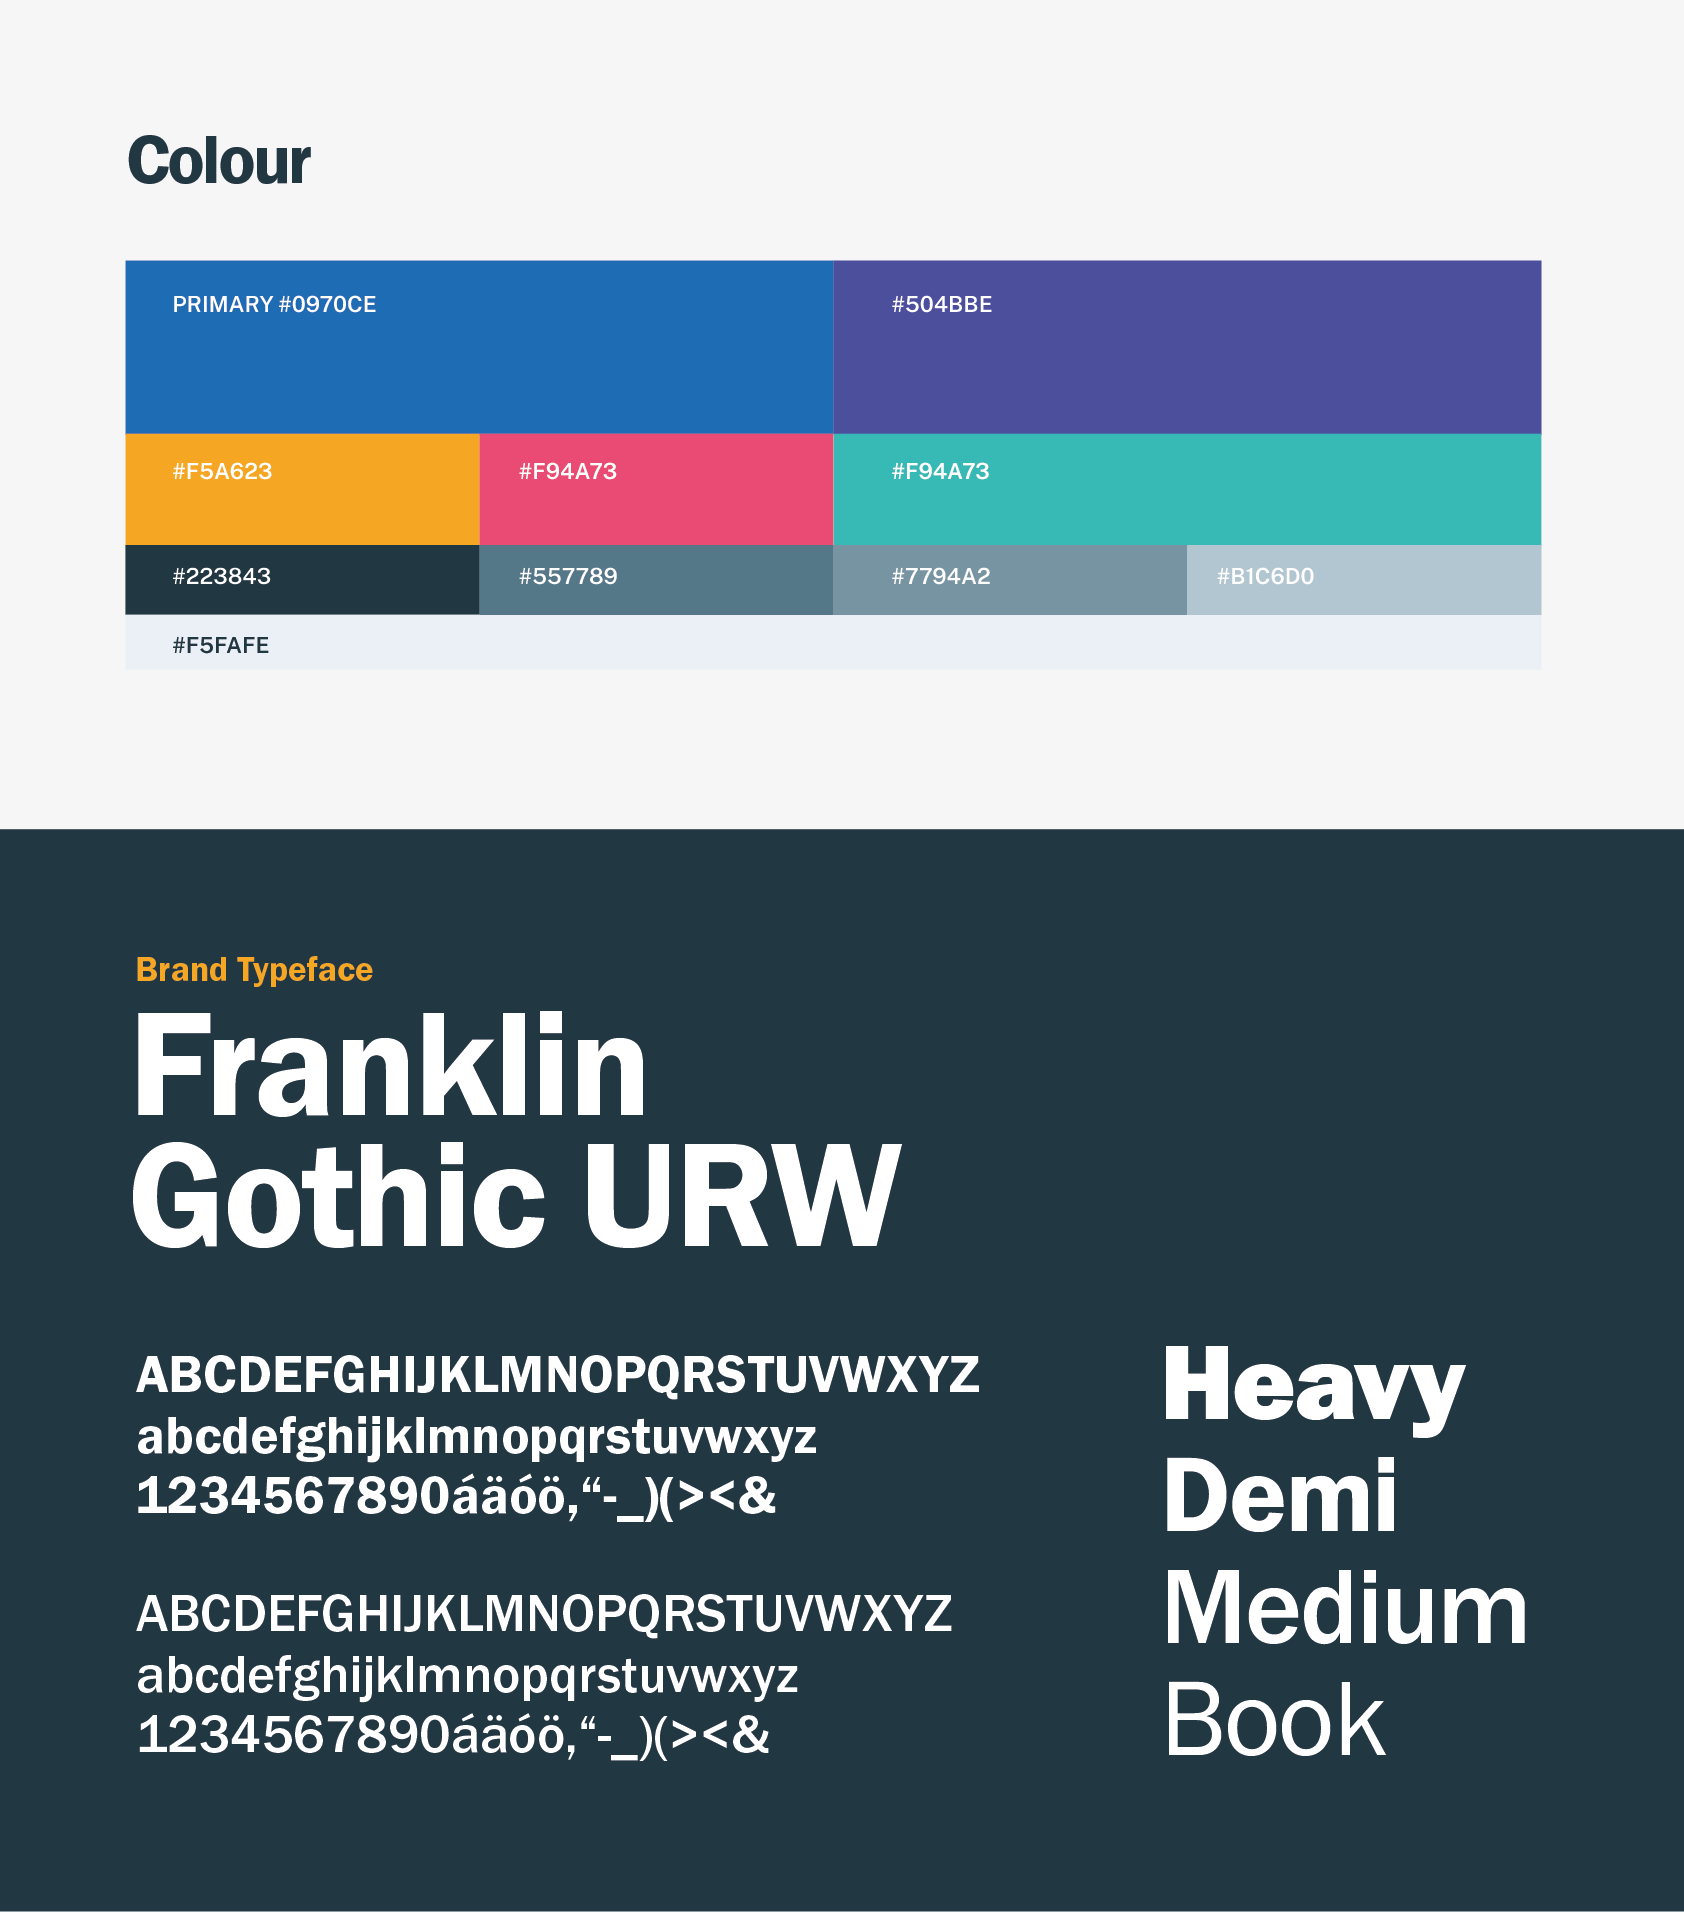 Colours and type